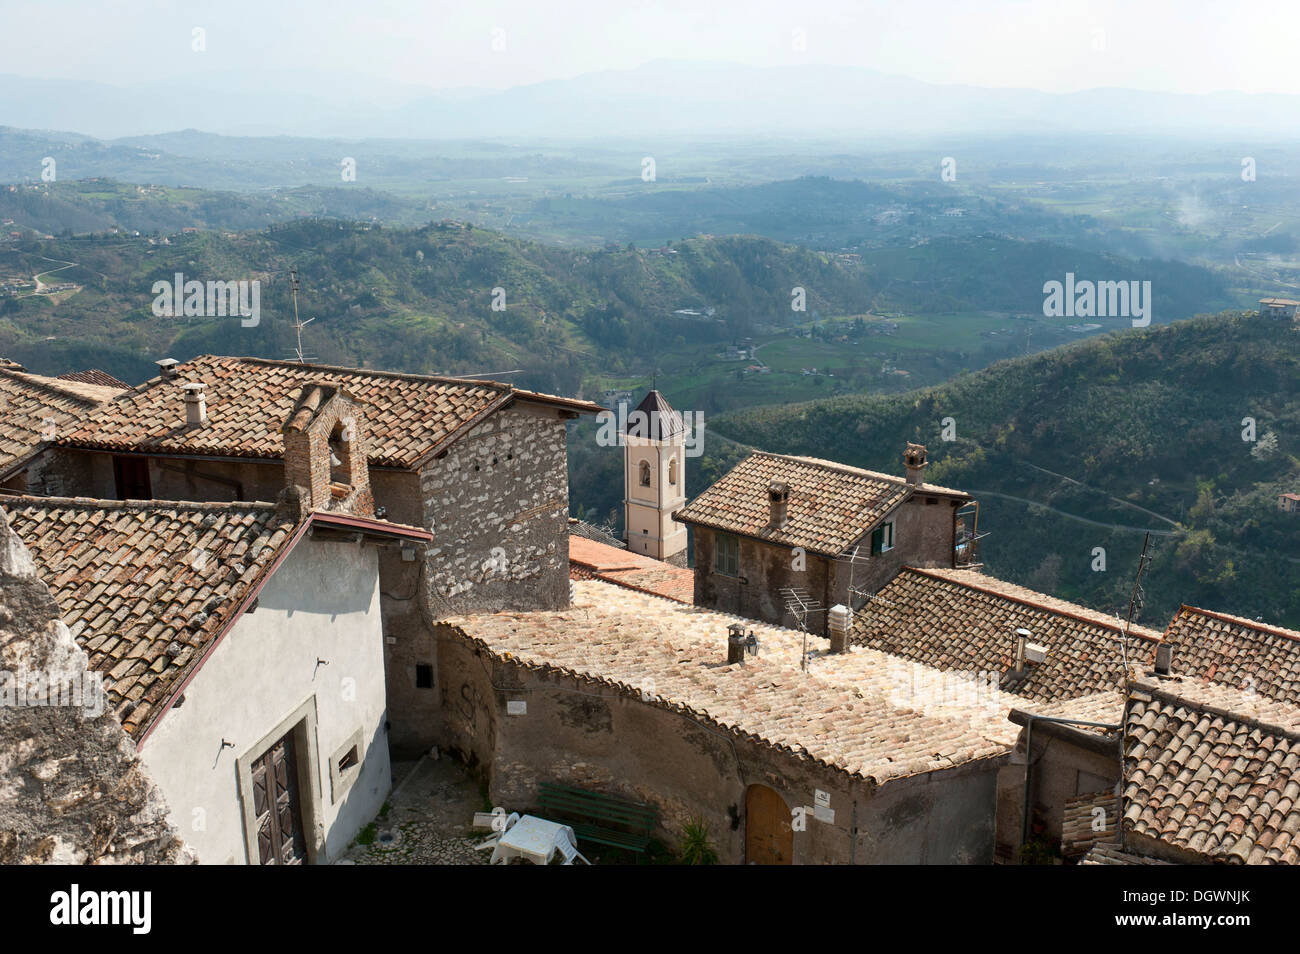 View over the rooftops of the old town from Monte Celeste on a painter's landscape, Olevano Romano, Lazio, Italy, - Stock Image